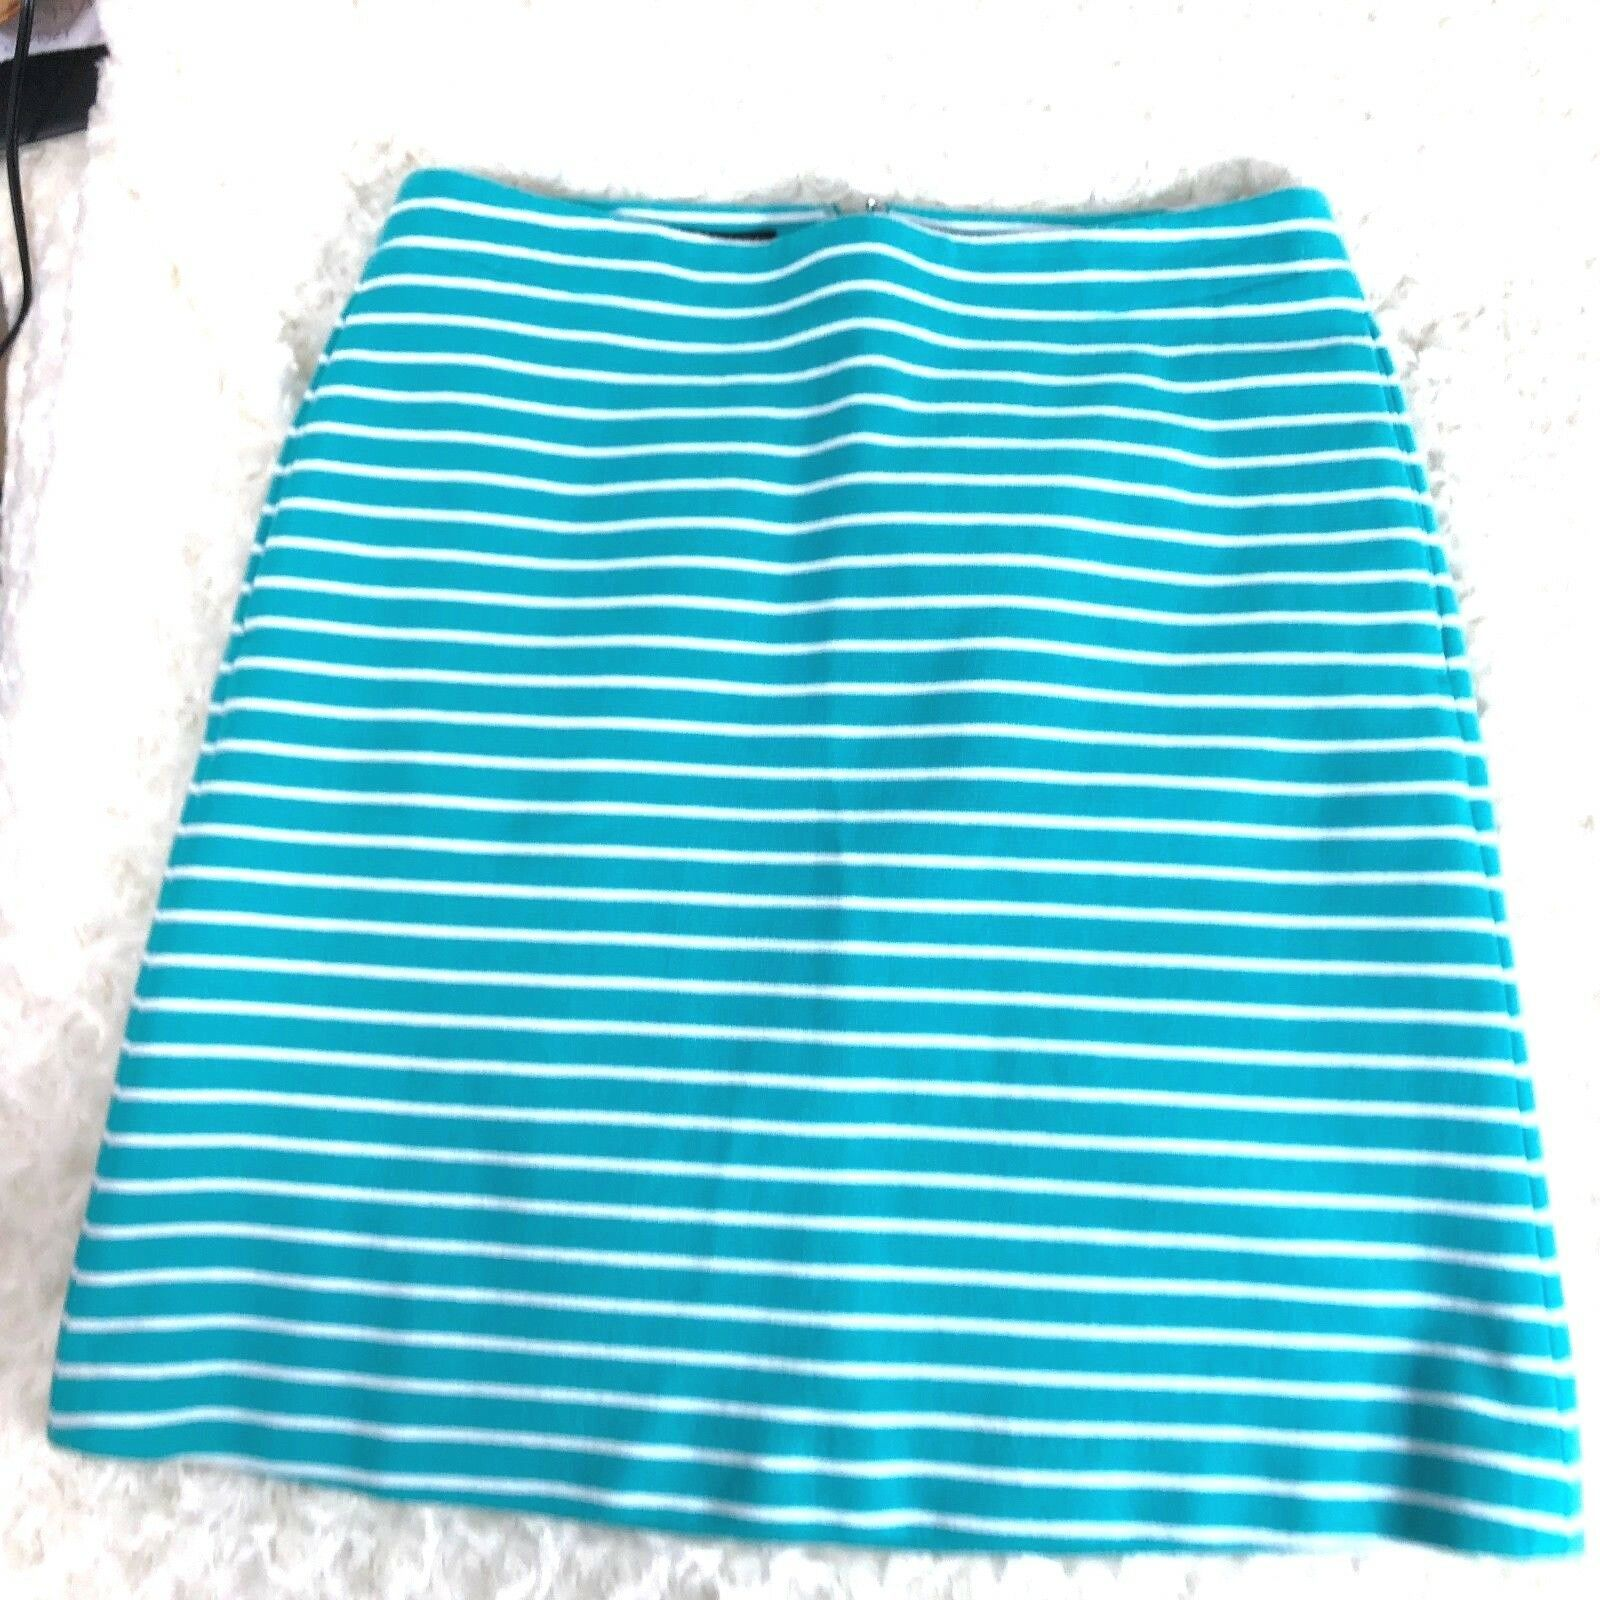 Talbots Womens Sz 6 P Teal White Striped Skirt With Pockets  - $13.60